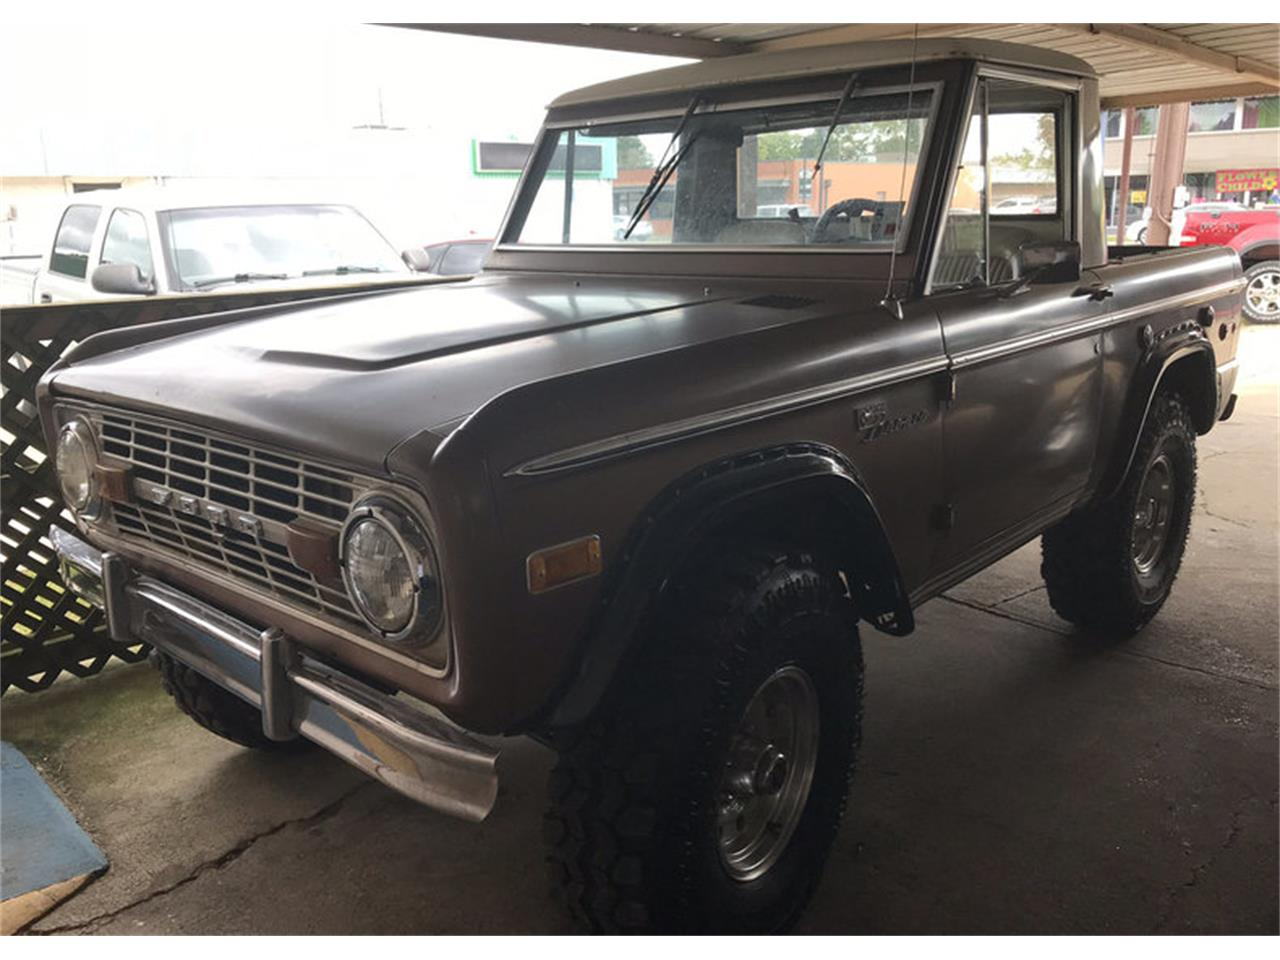 1974 Ford Bronco For Sale Classiccars Com Cc 1159616